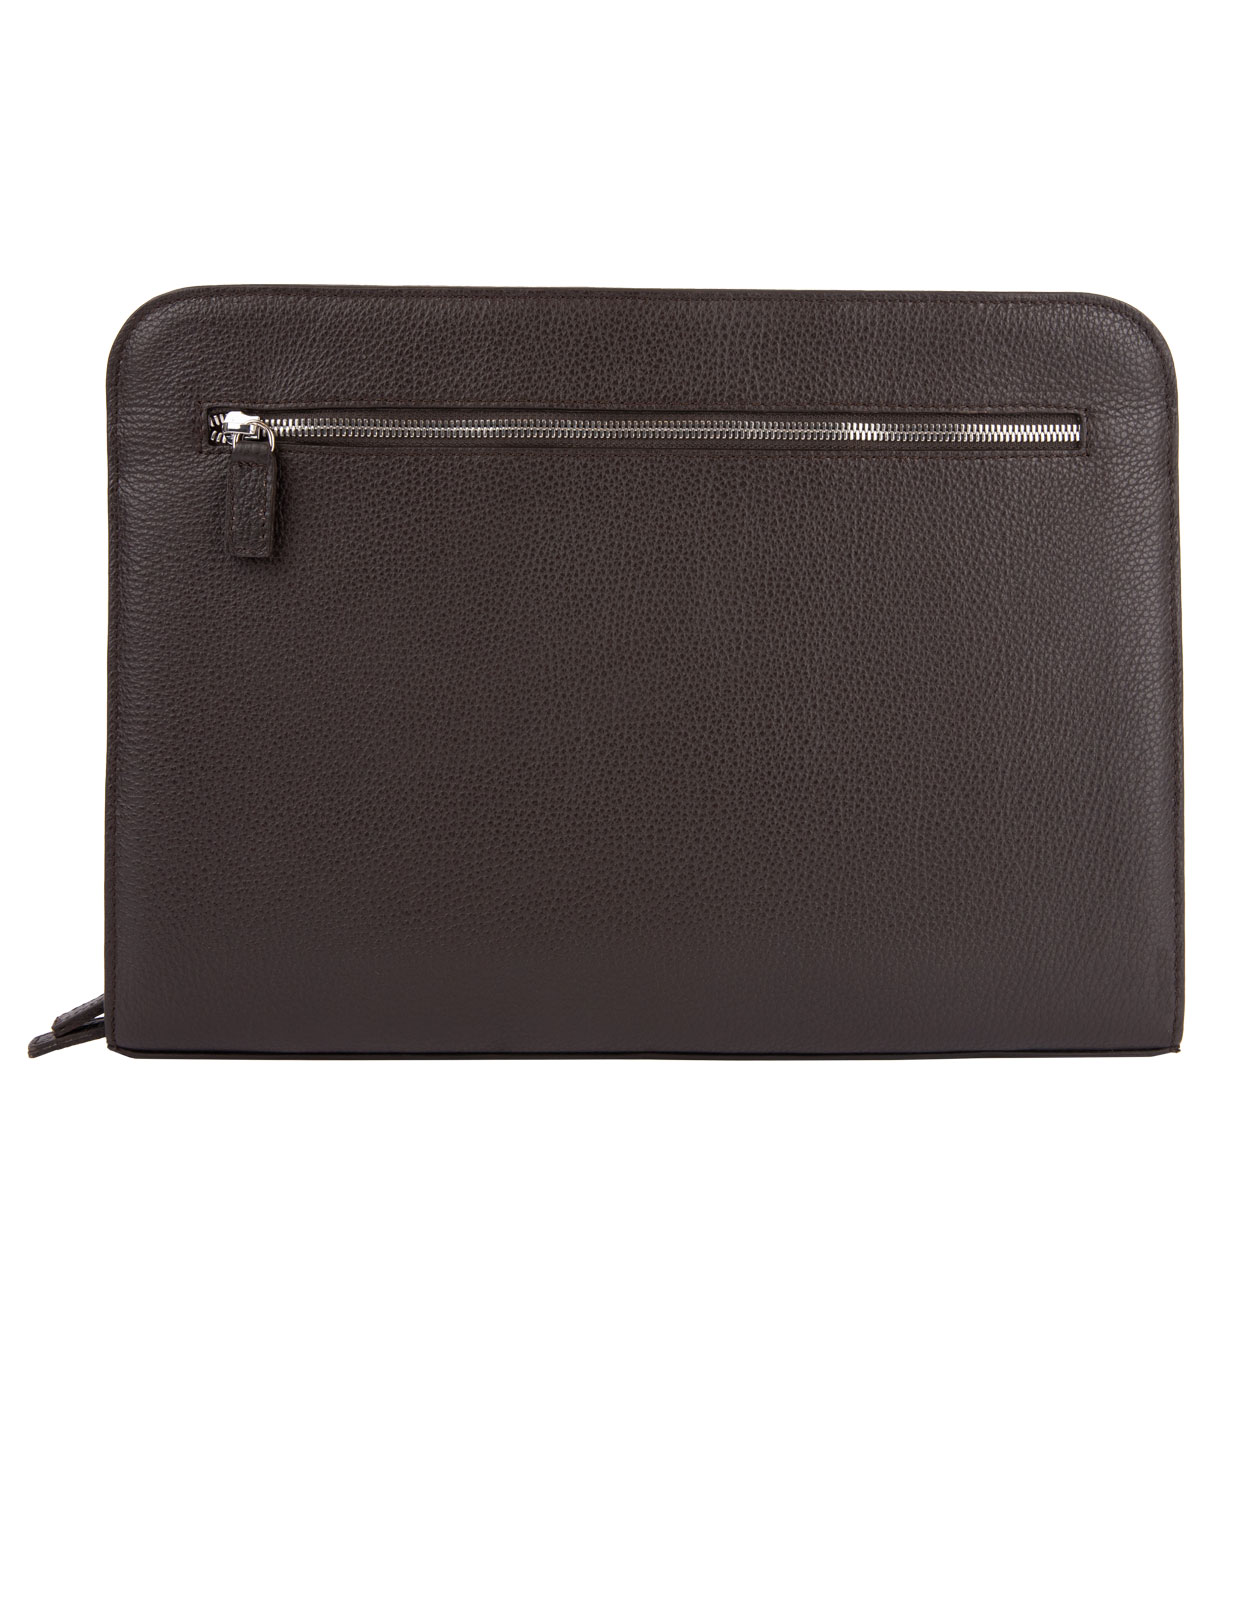 Document Case Bottalato Leather DarkBrown